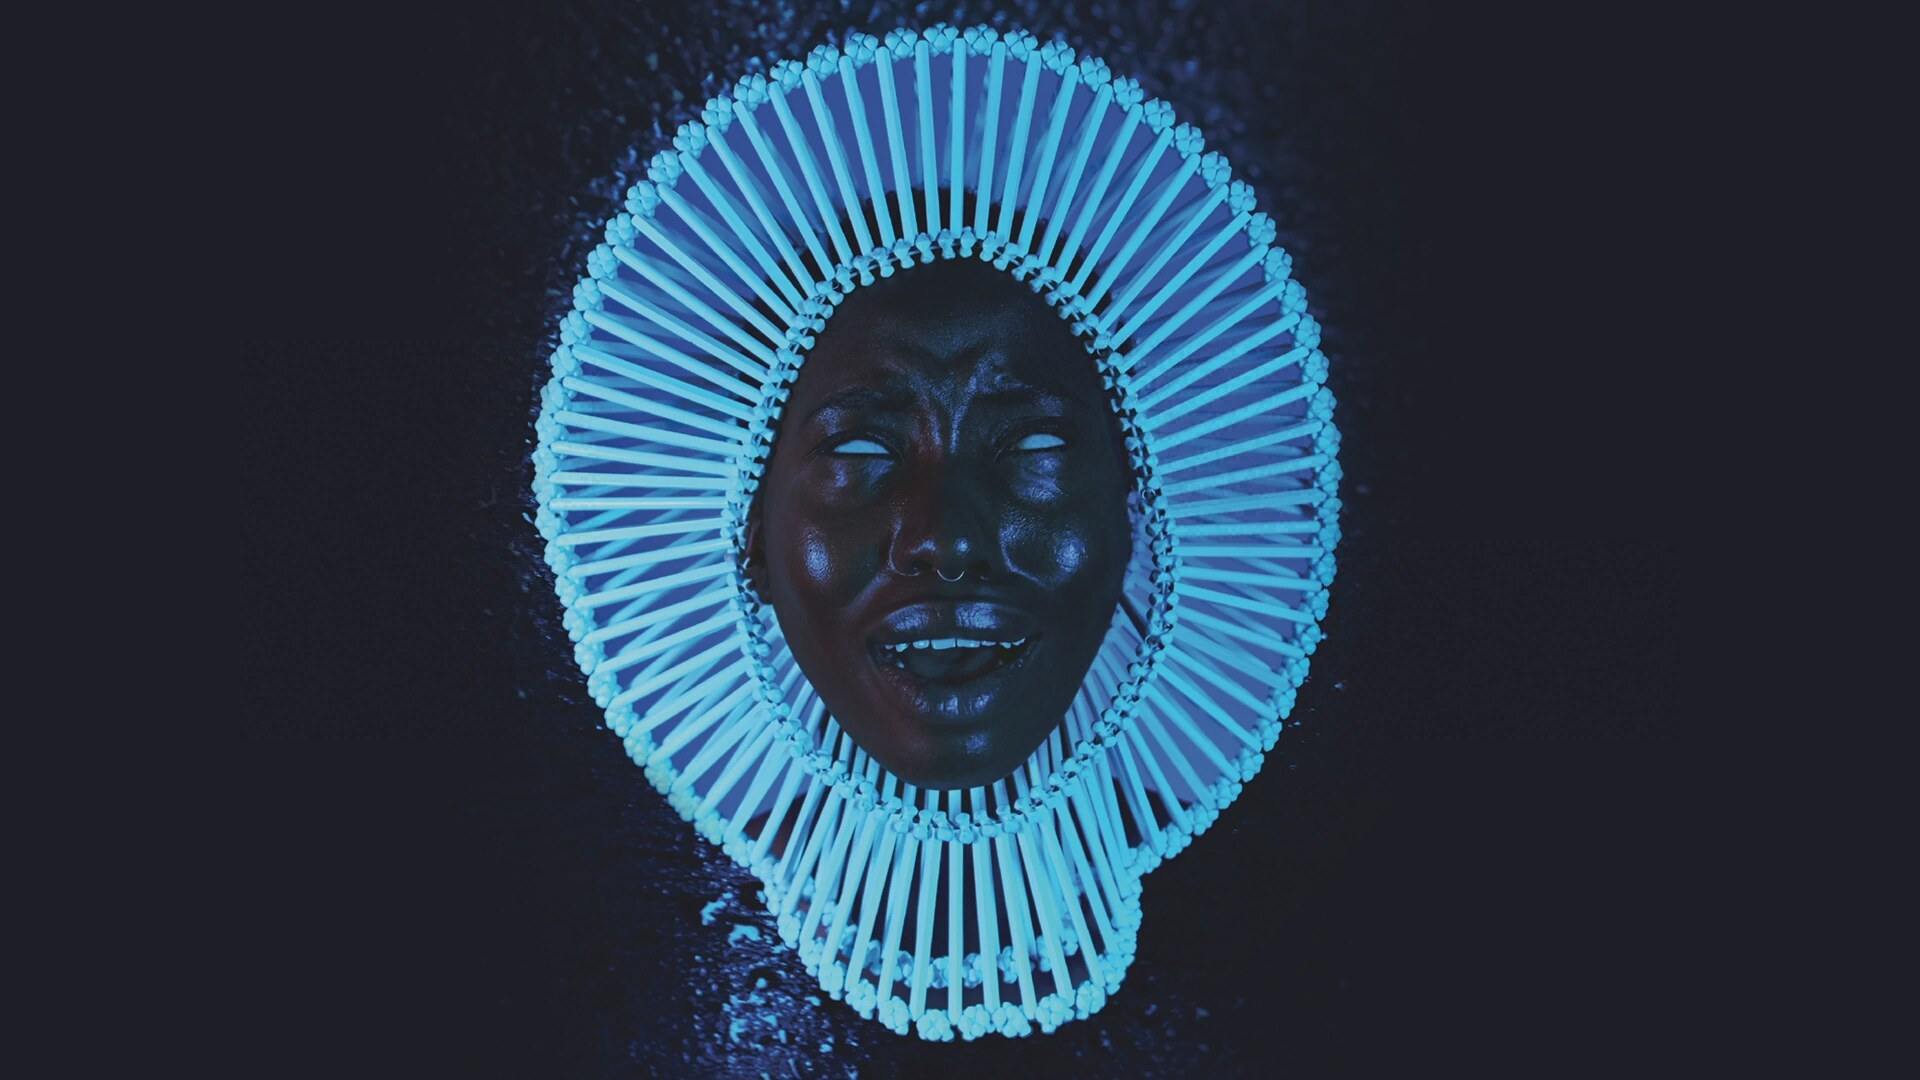 Category Music Song Redbone Artist Childish Gambino Album Awaken My Love! Writers Donald Glover Ludwig Göransson Licensed to YouTube by